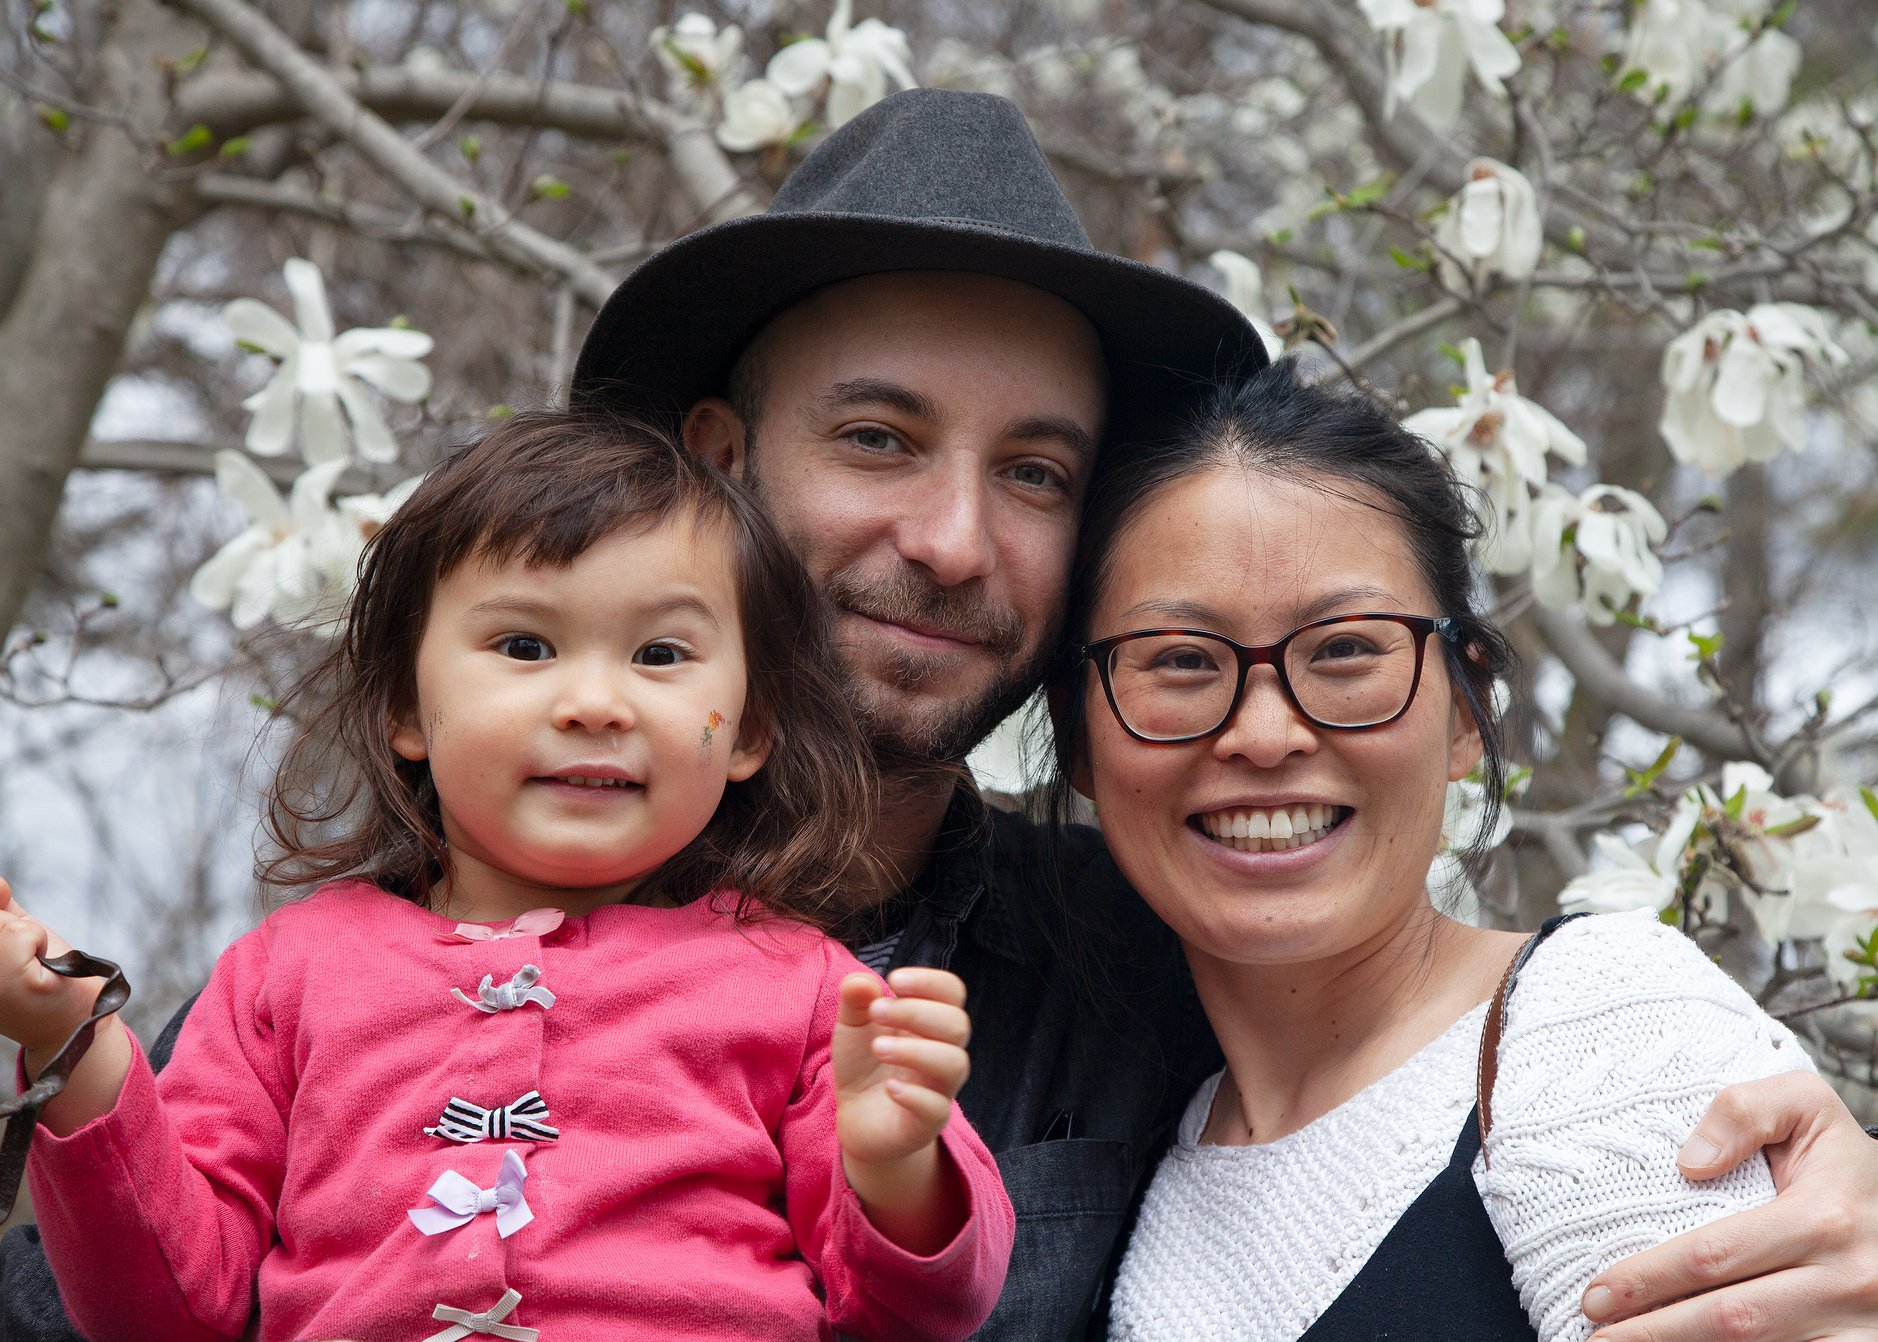 Brandon Schulman (center) with his wife, Japanese photographer and foodist Chiaki Hara Schulman, and their daughter Mila Hannah Schulman.